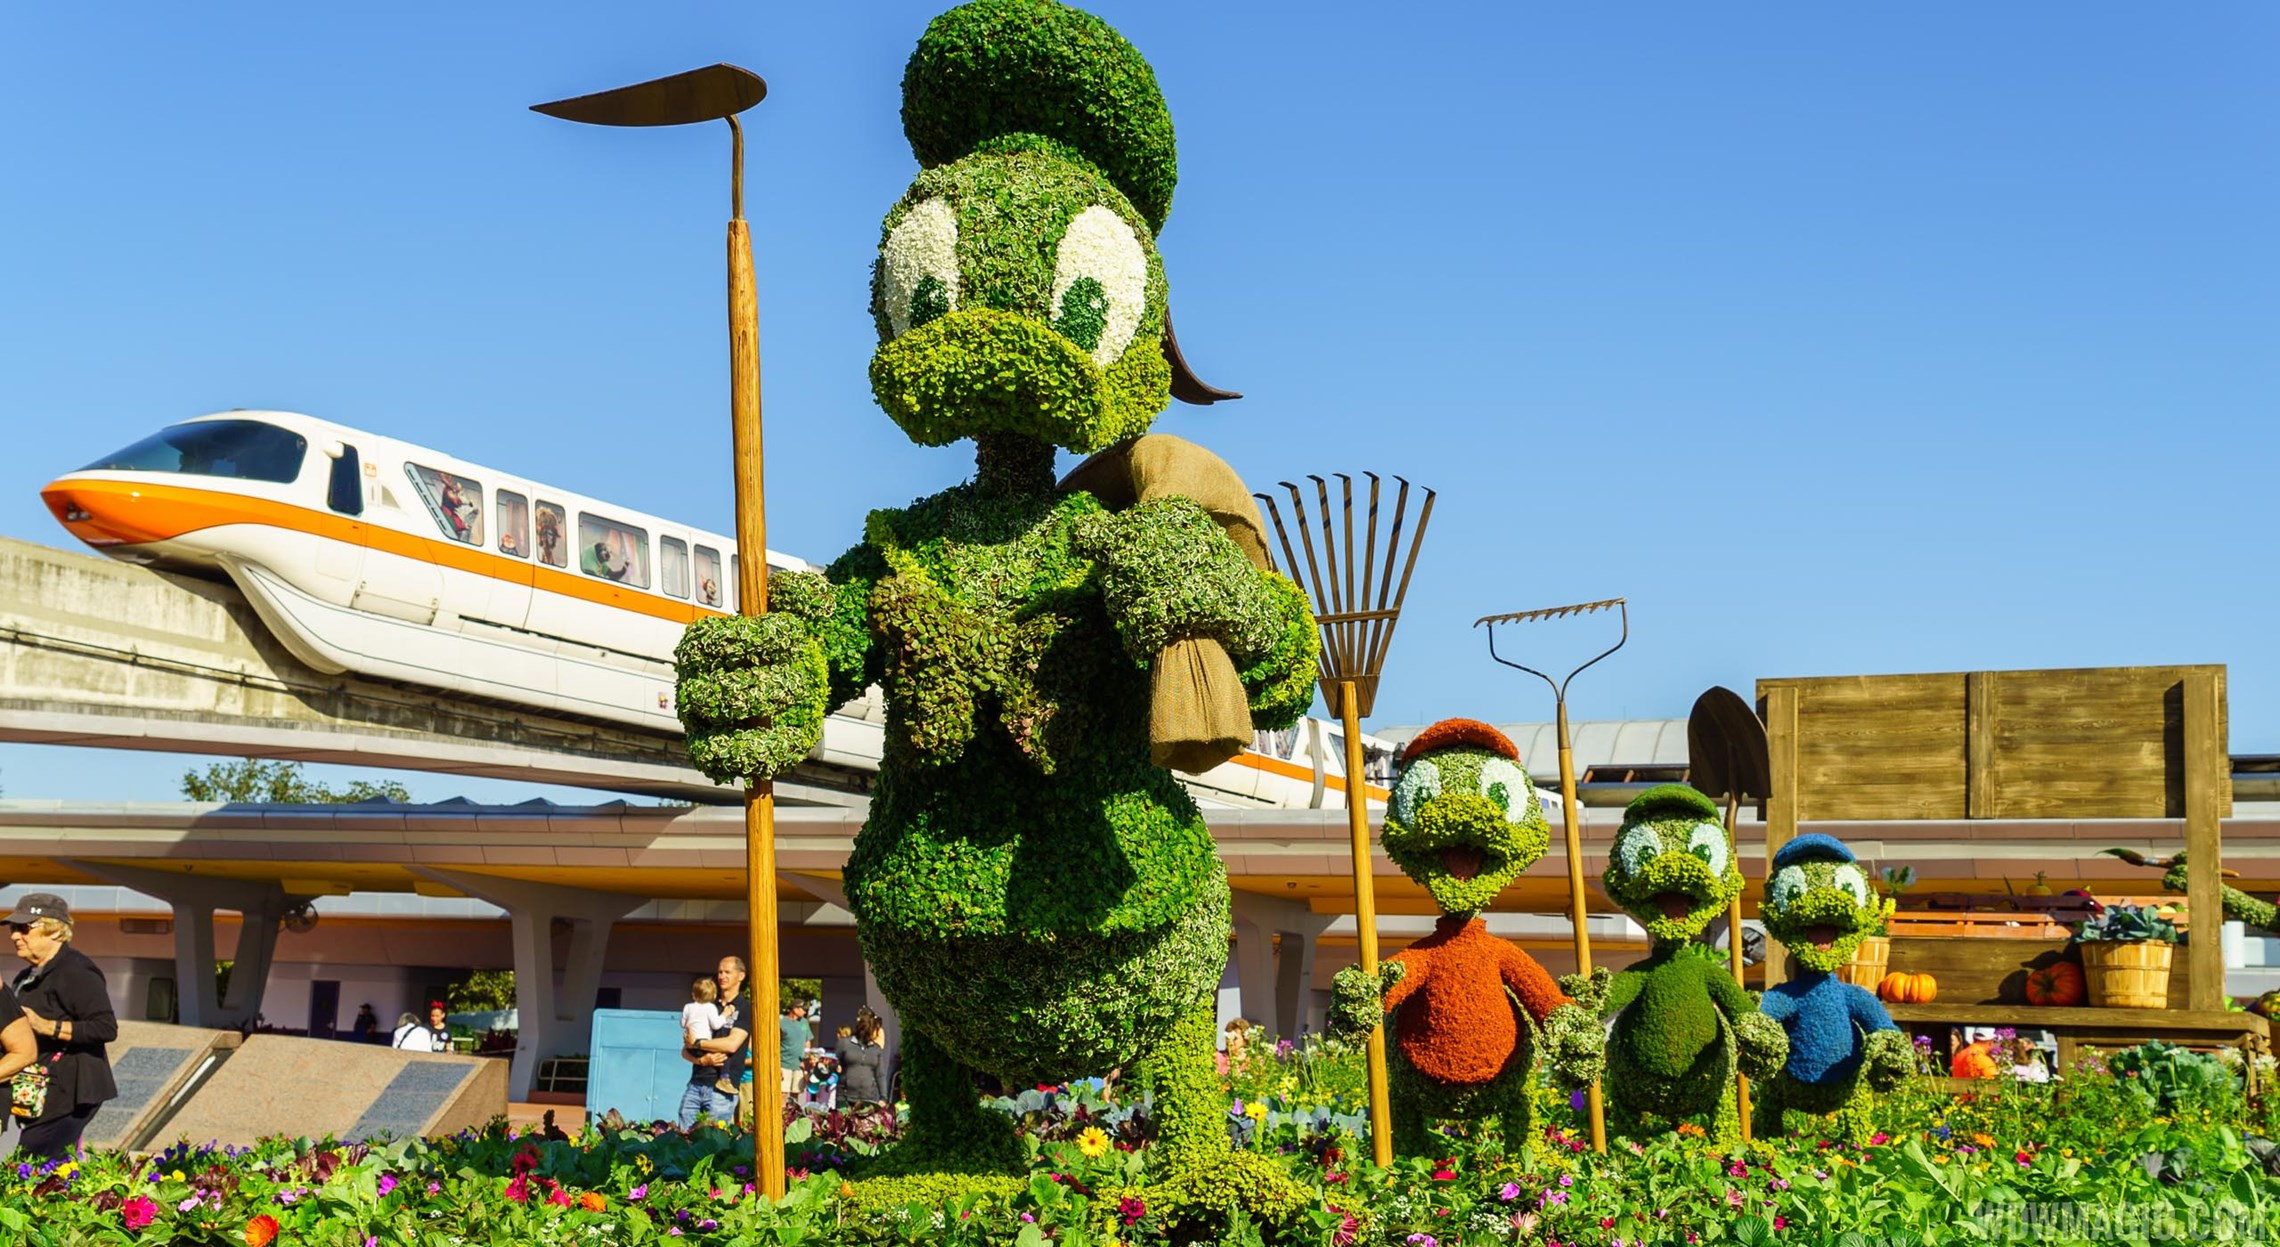 Donald, Huey, Dewy and Louie at the Flower & Garden Festival